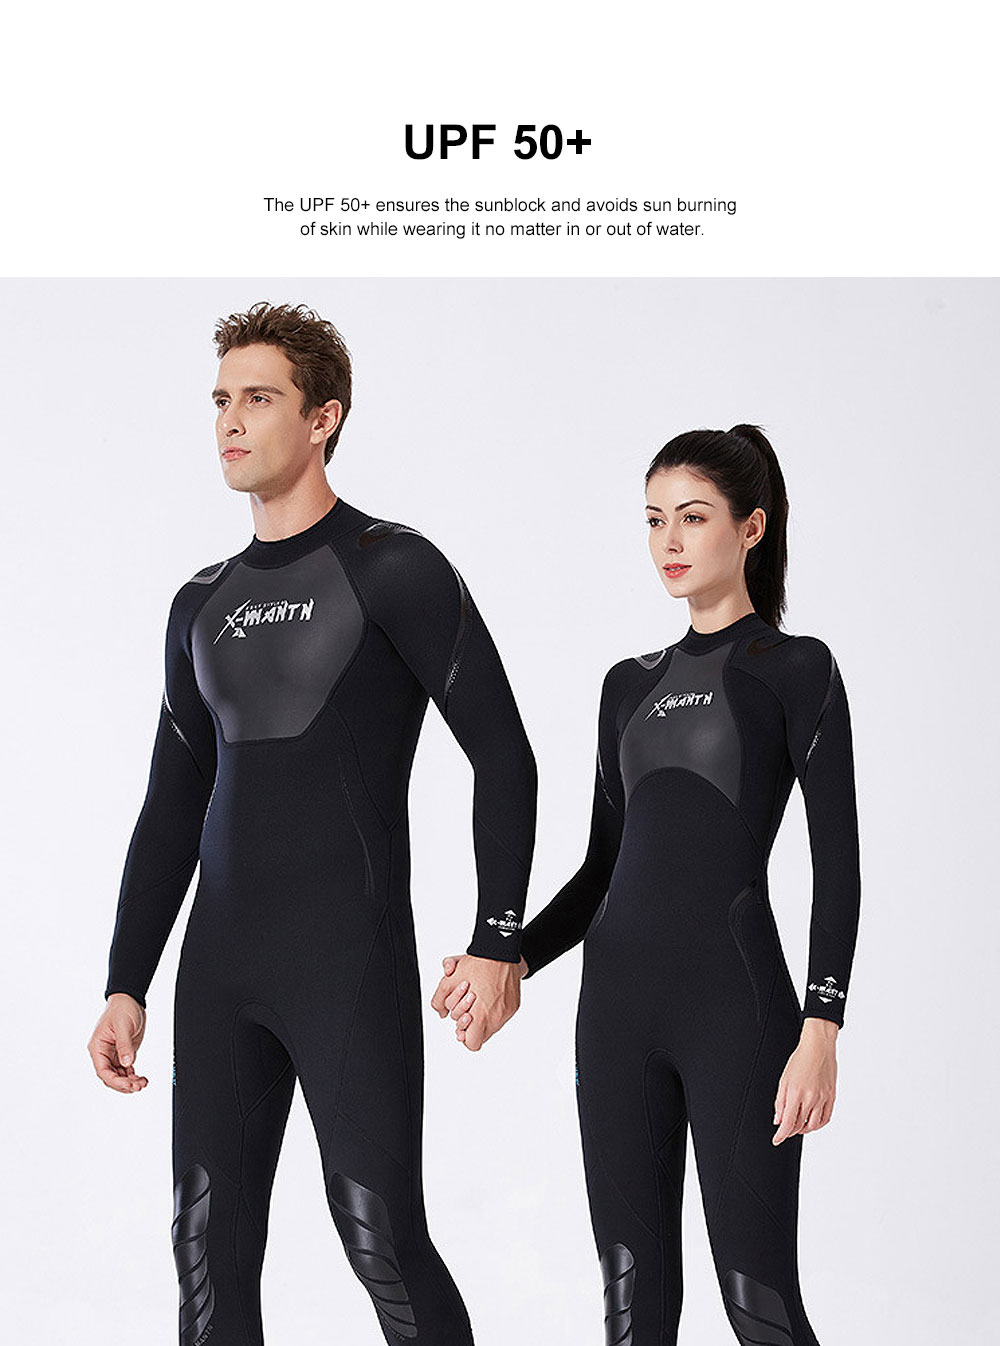 UV Protection Unisex Diving Dress, One-piece Warm-kept Diving Suit, Long Sleeve Swimwear for Snorkeling, Diving Winter Swimsuit 2019 2